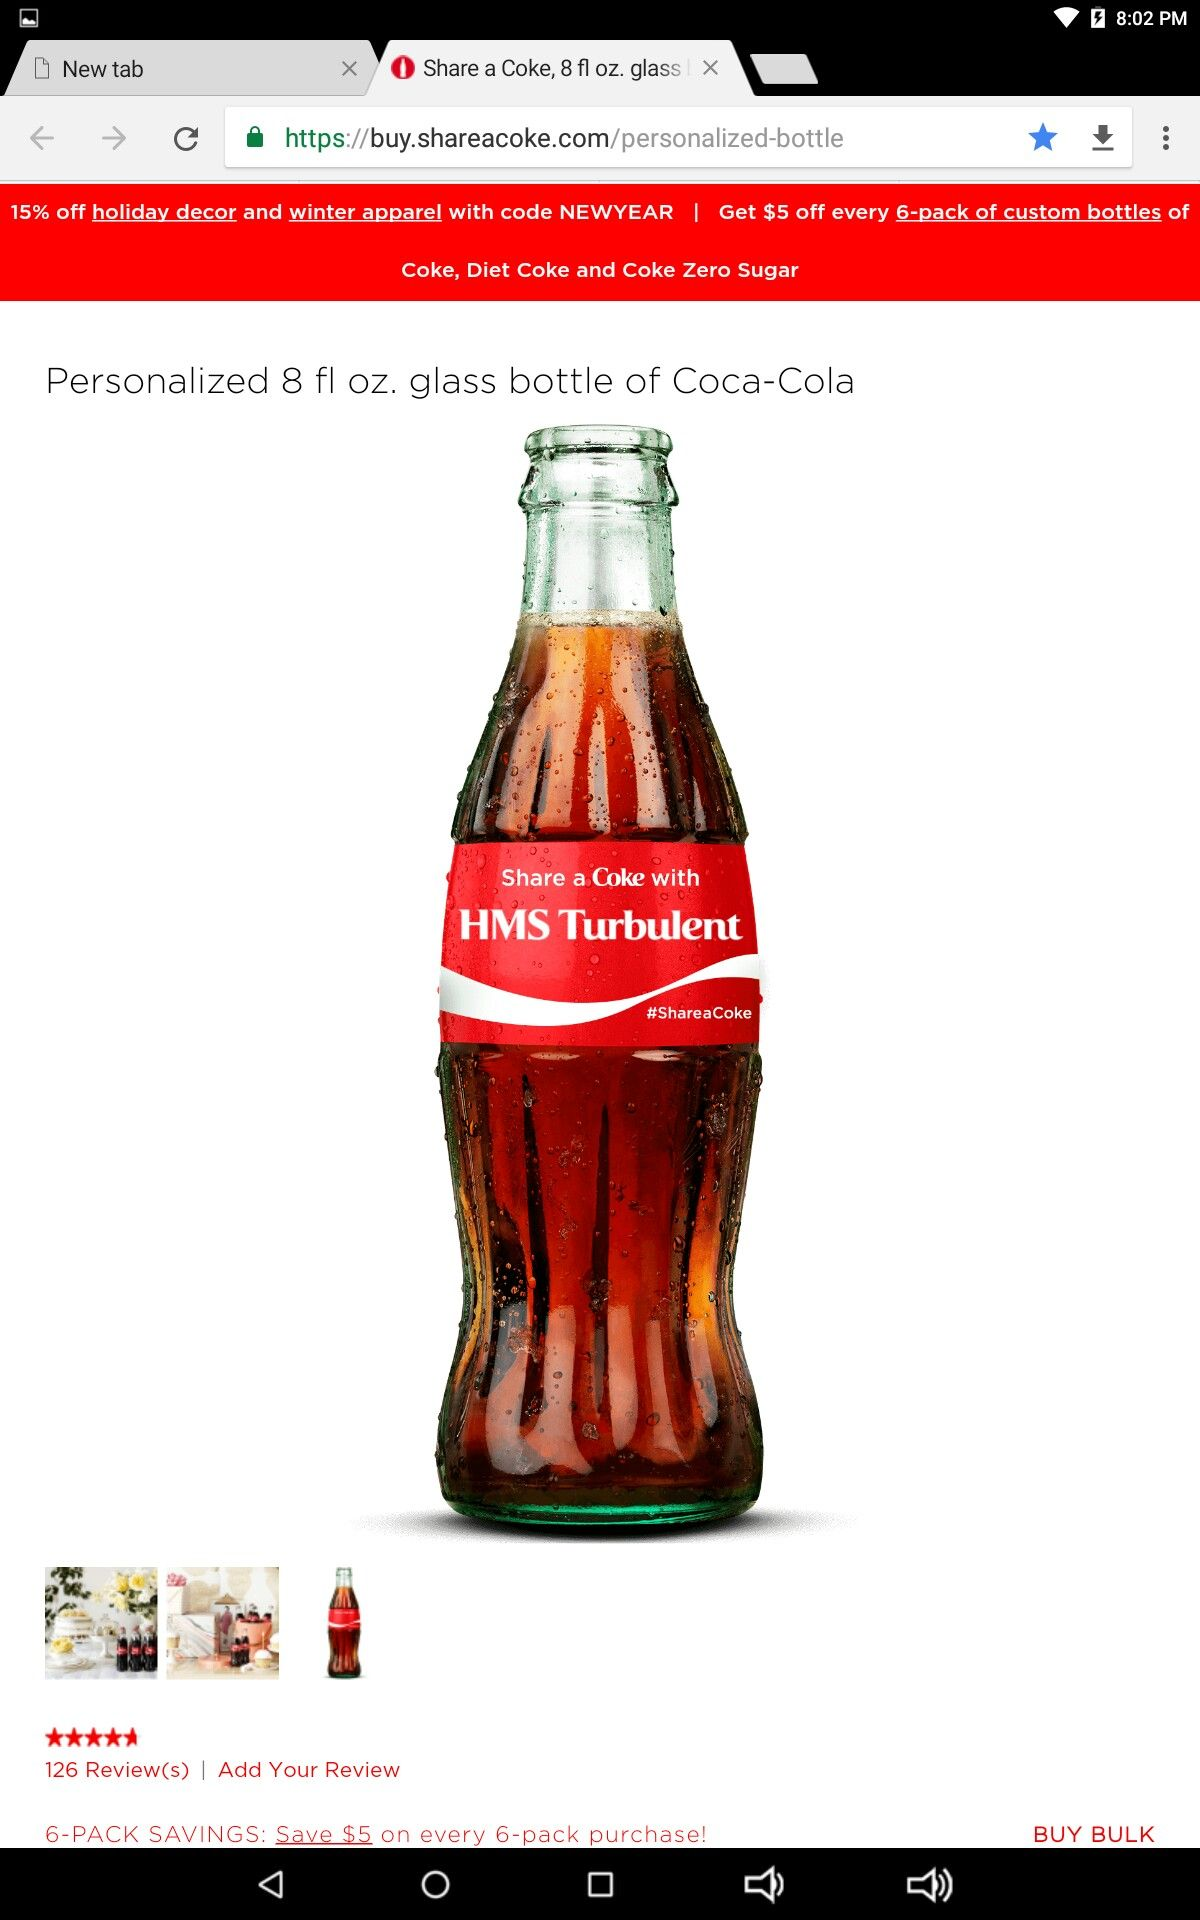 Pin By Roman Pena On Share A Coke With Images Custom Bottles Share A Coke Personalized Bottles